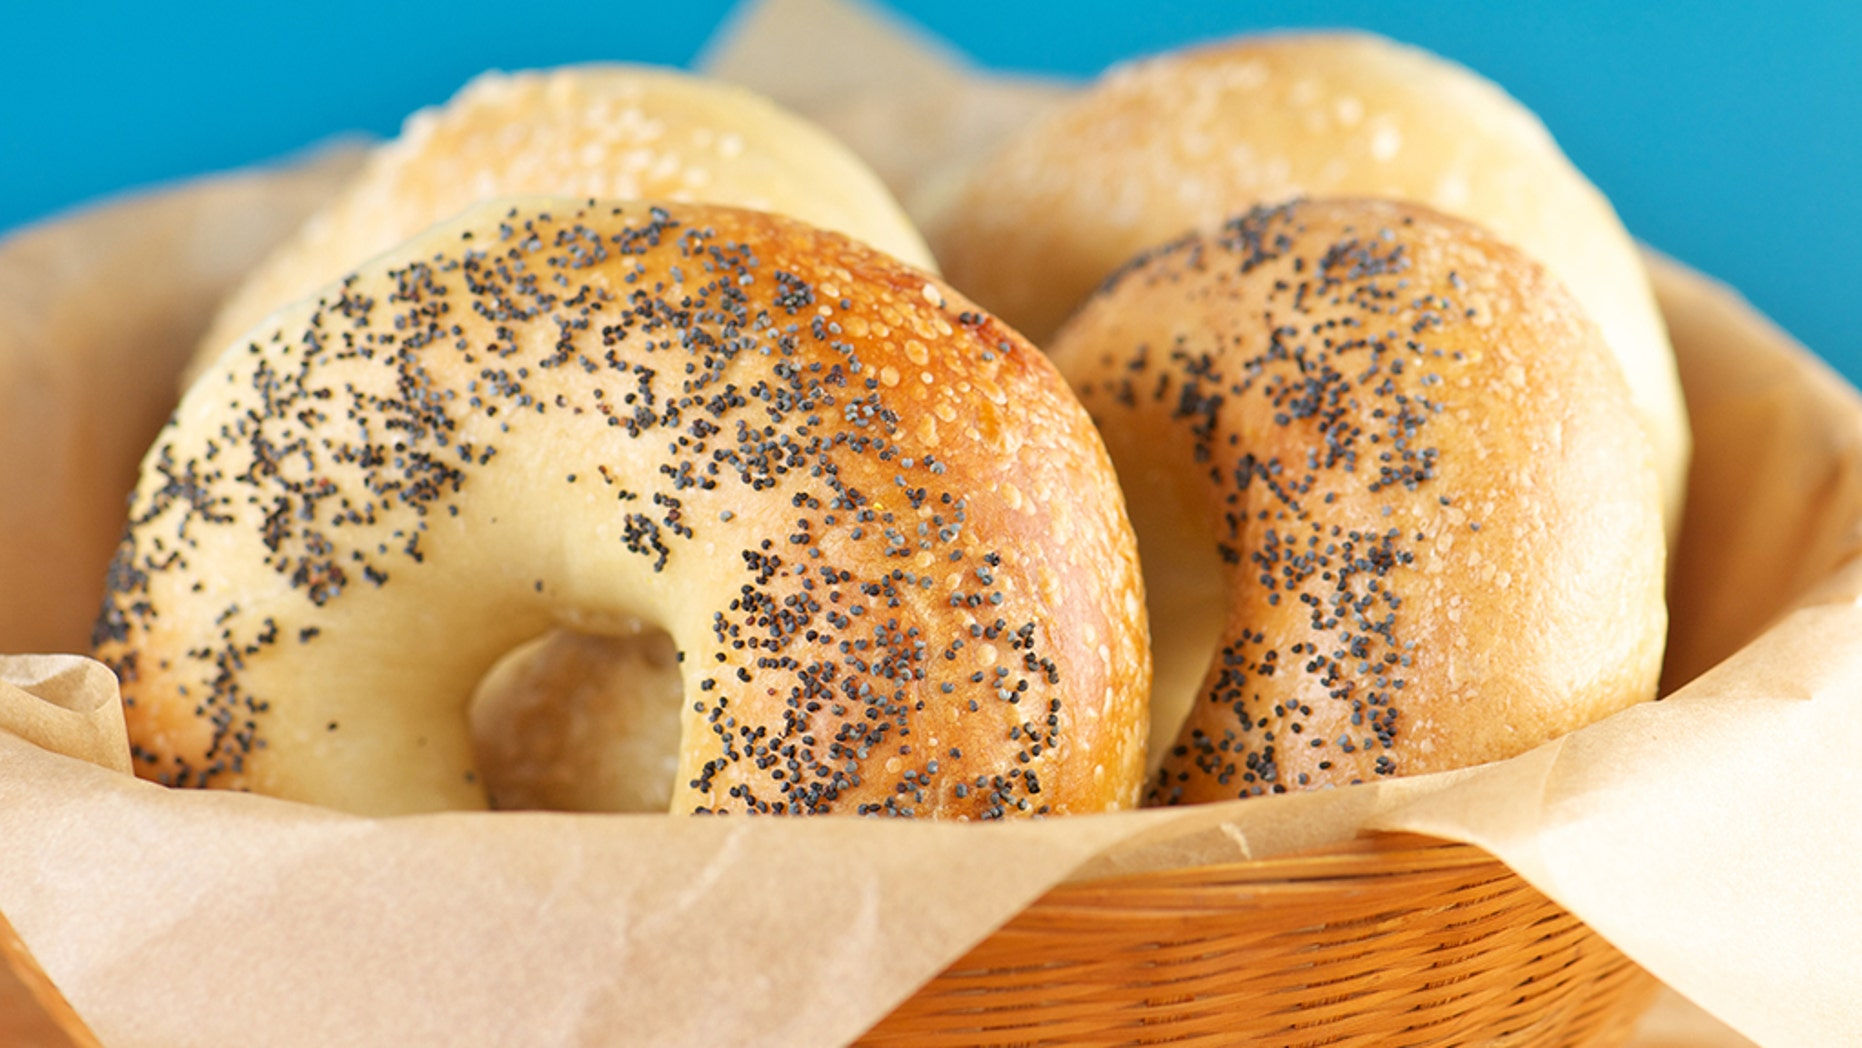 Should bagels be sliced like loaves of bread?